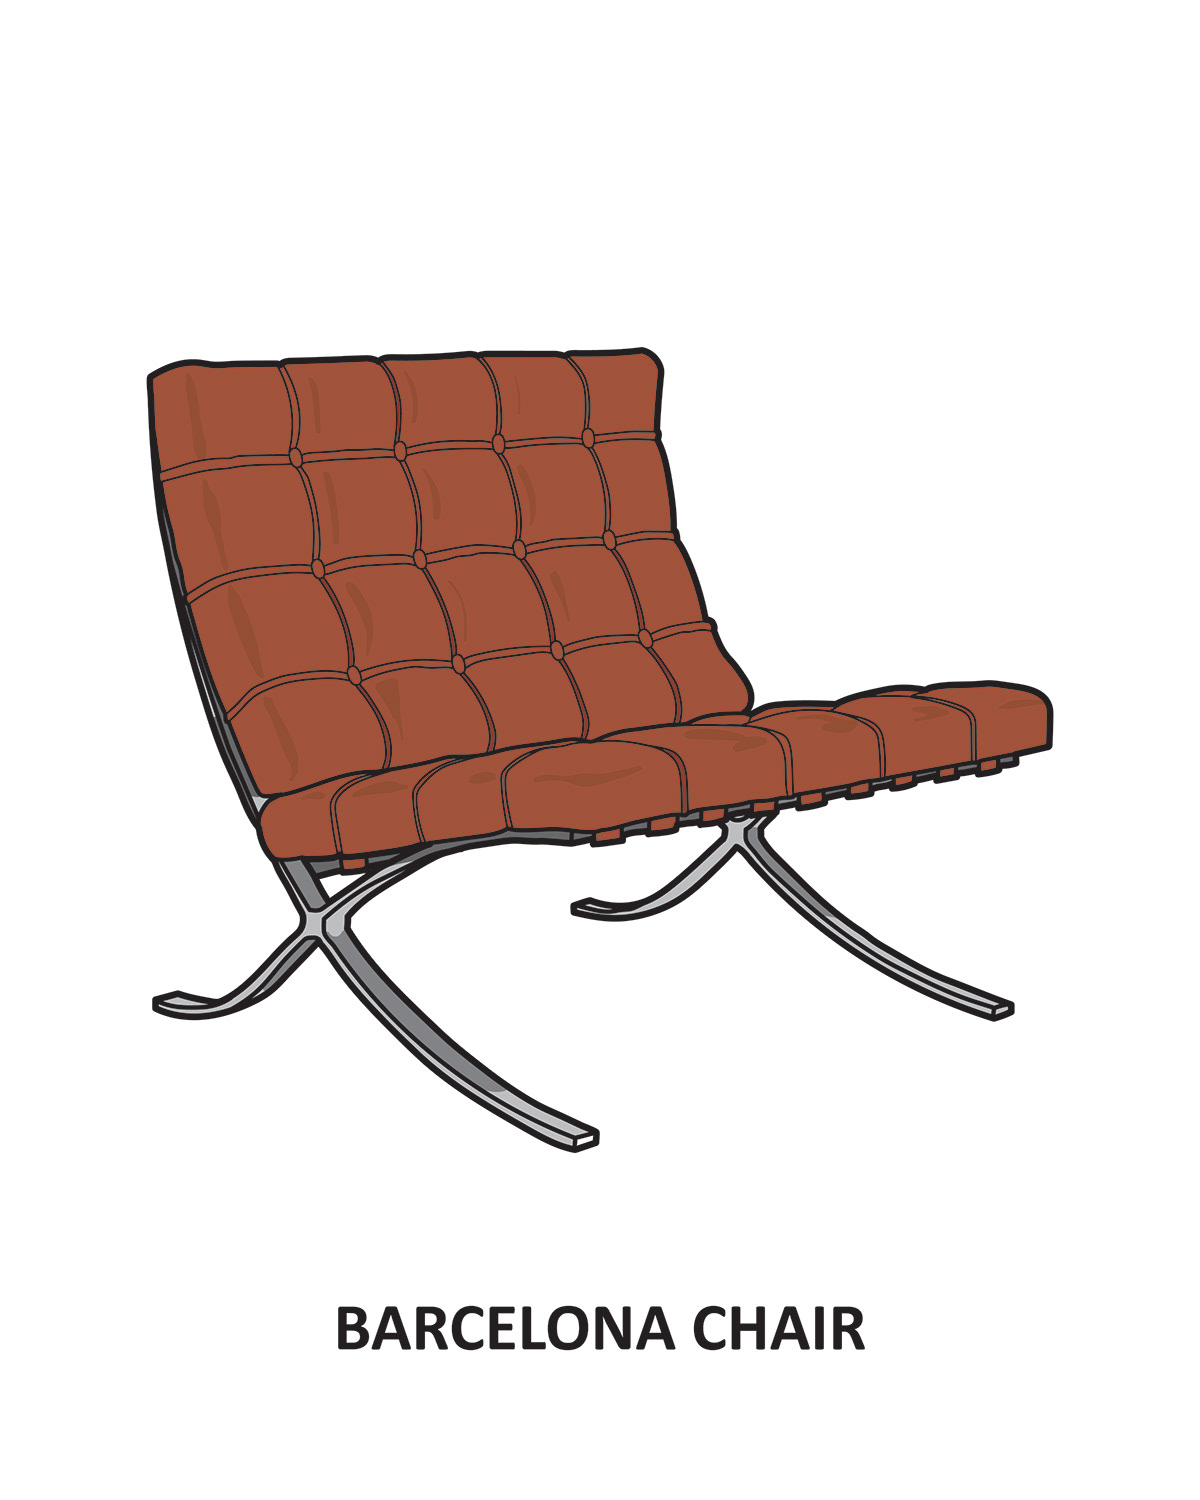 Famous Chair Famous Chairs On Behance